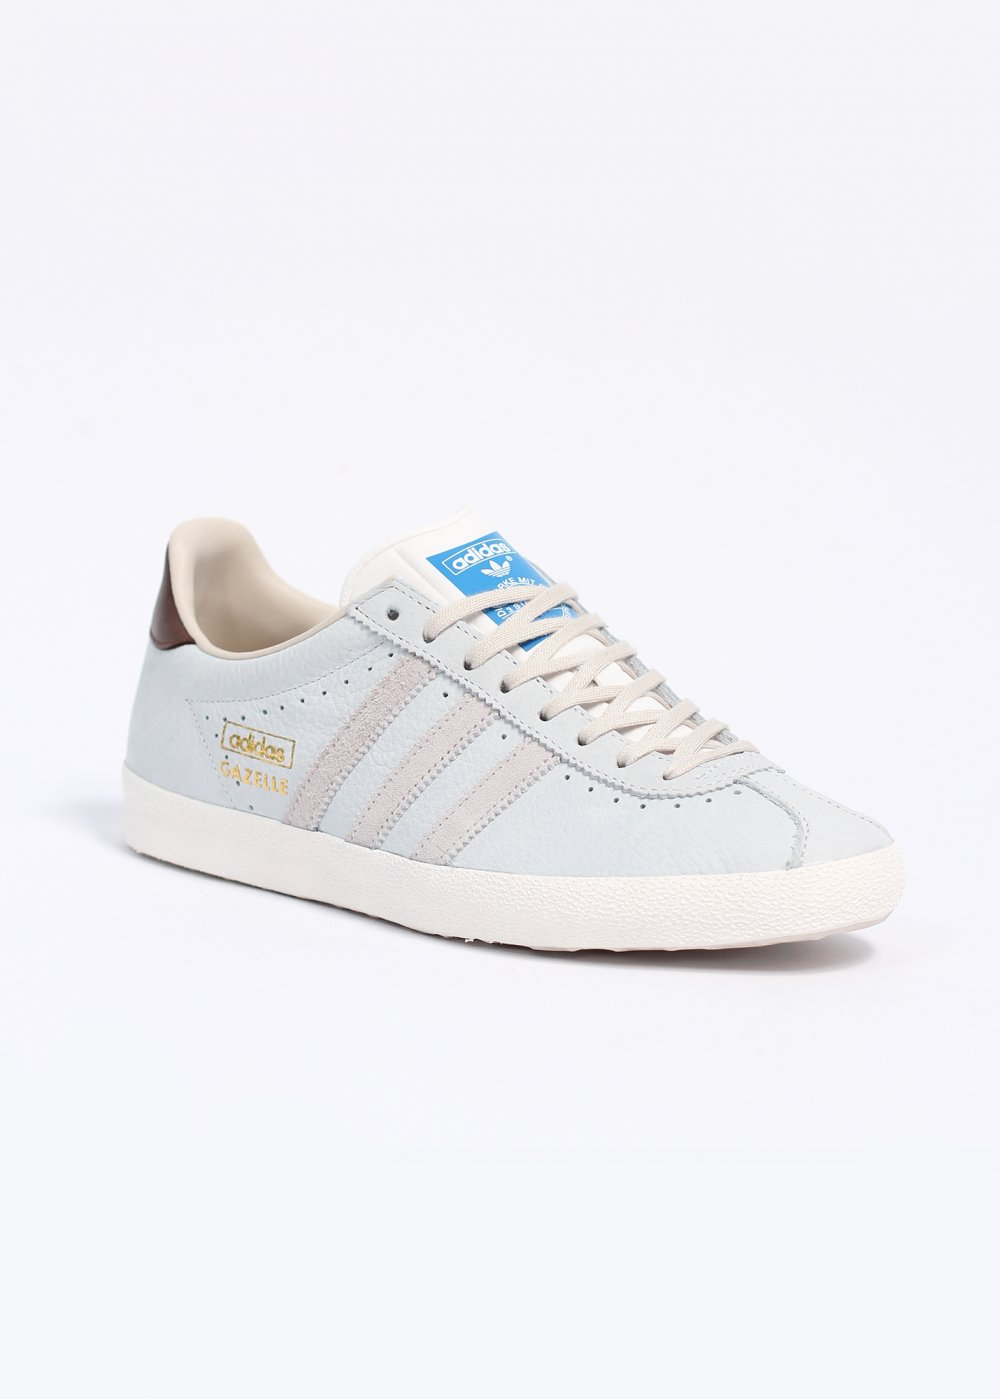 Adidas Gazelle Og Leather Neo White